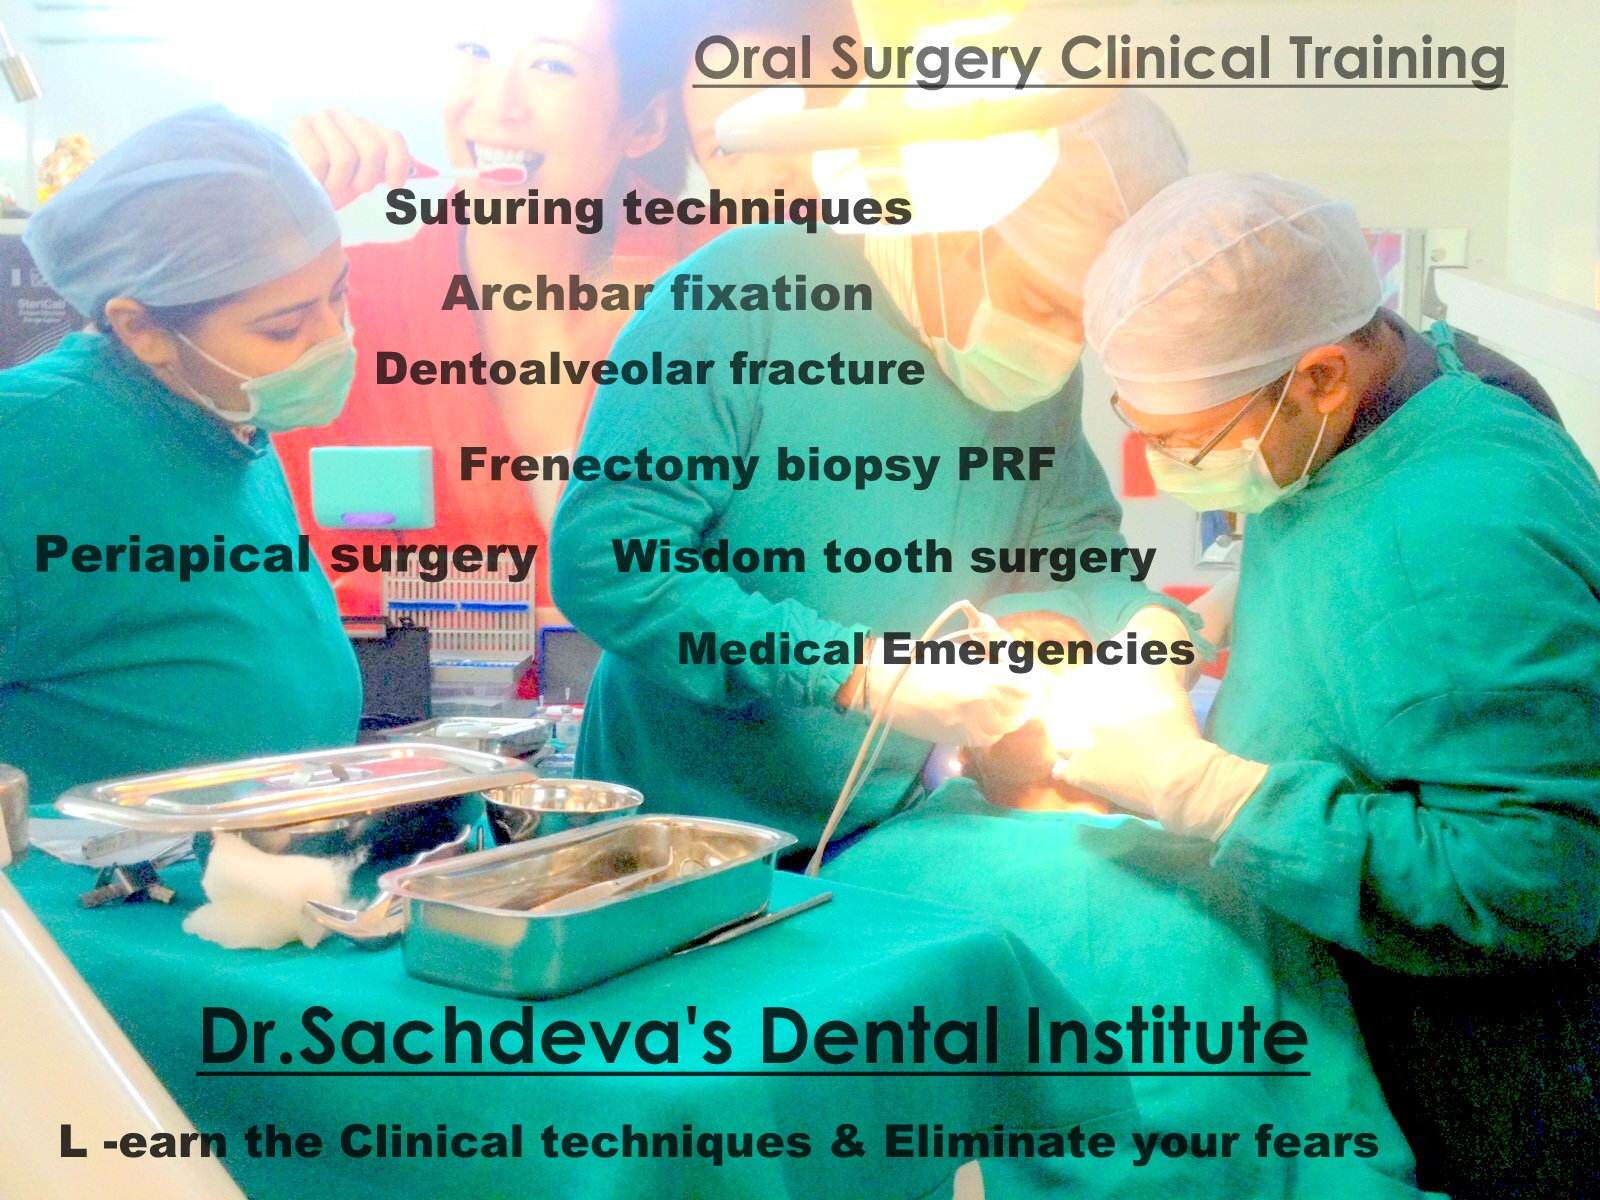 Visit Dental Clinic For Teeth Whitening Or Dental Implants Oral Surgery Course In Delhi Dental Clinic In Delhi